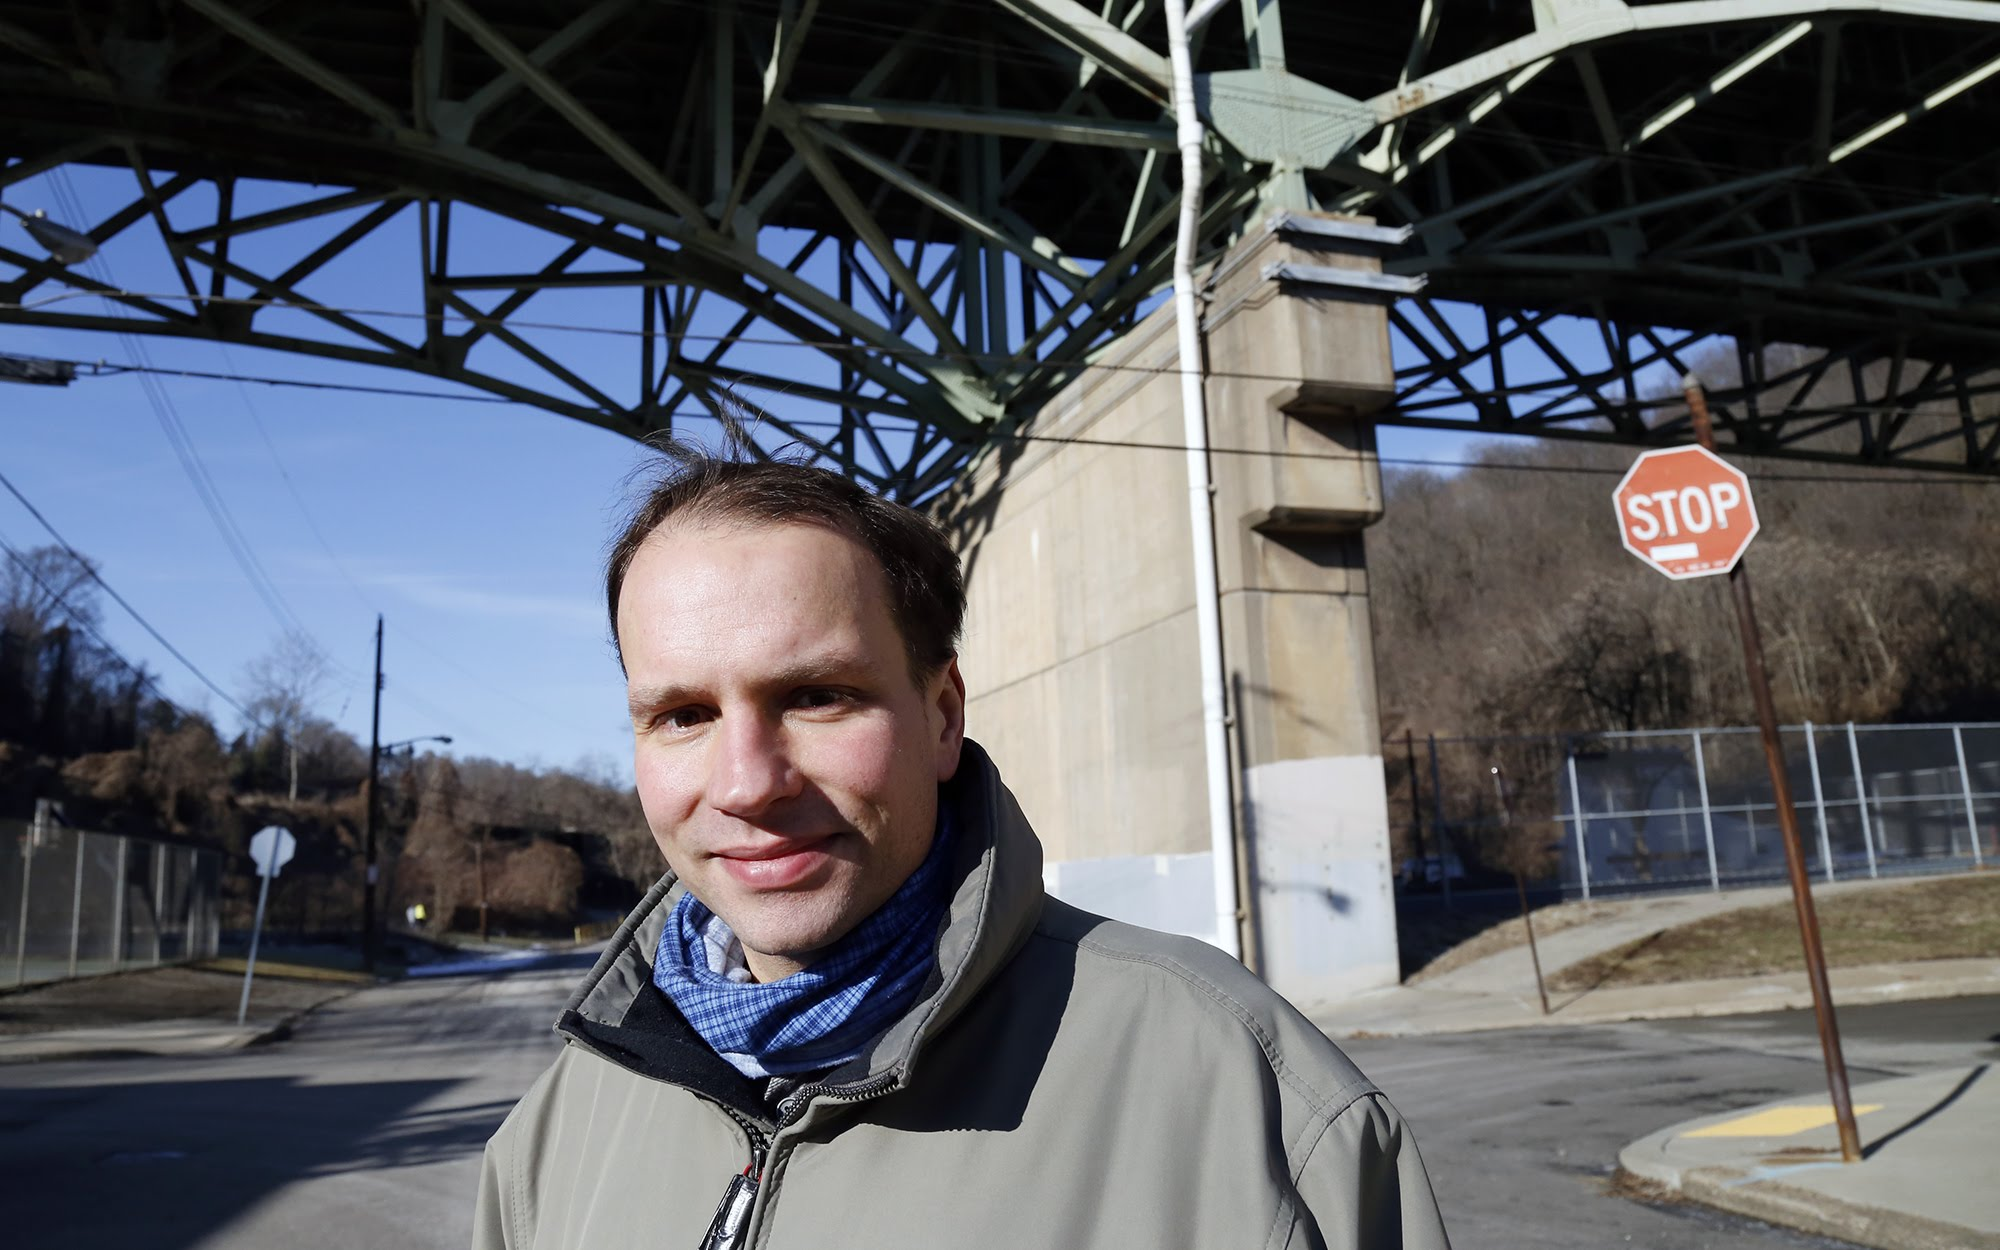 Klaus Libertus, a University of Pittsburgh researcher, has lived in The Run since 2015. (Photo by Ryan Loew/PublicSource)